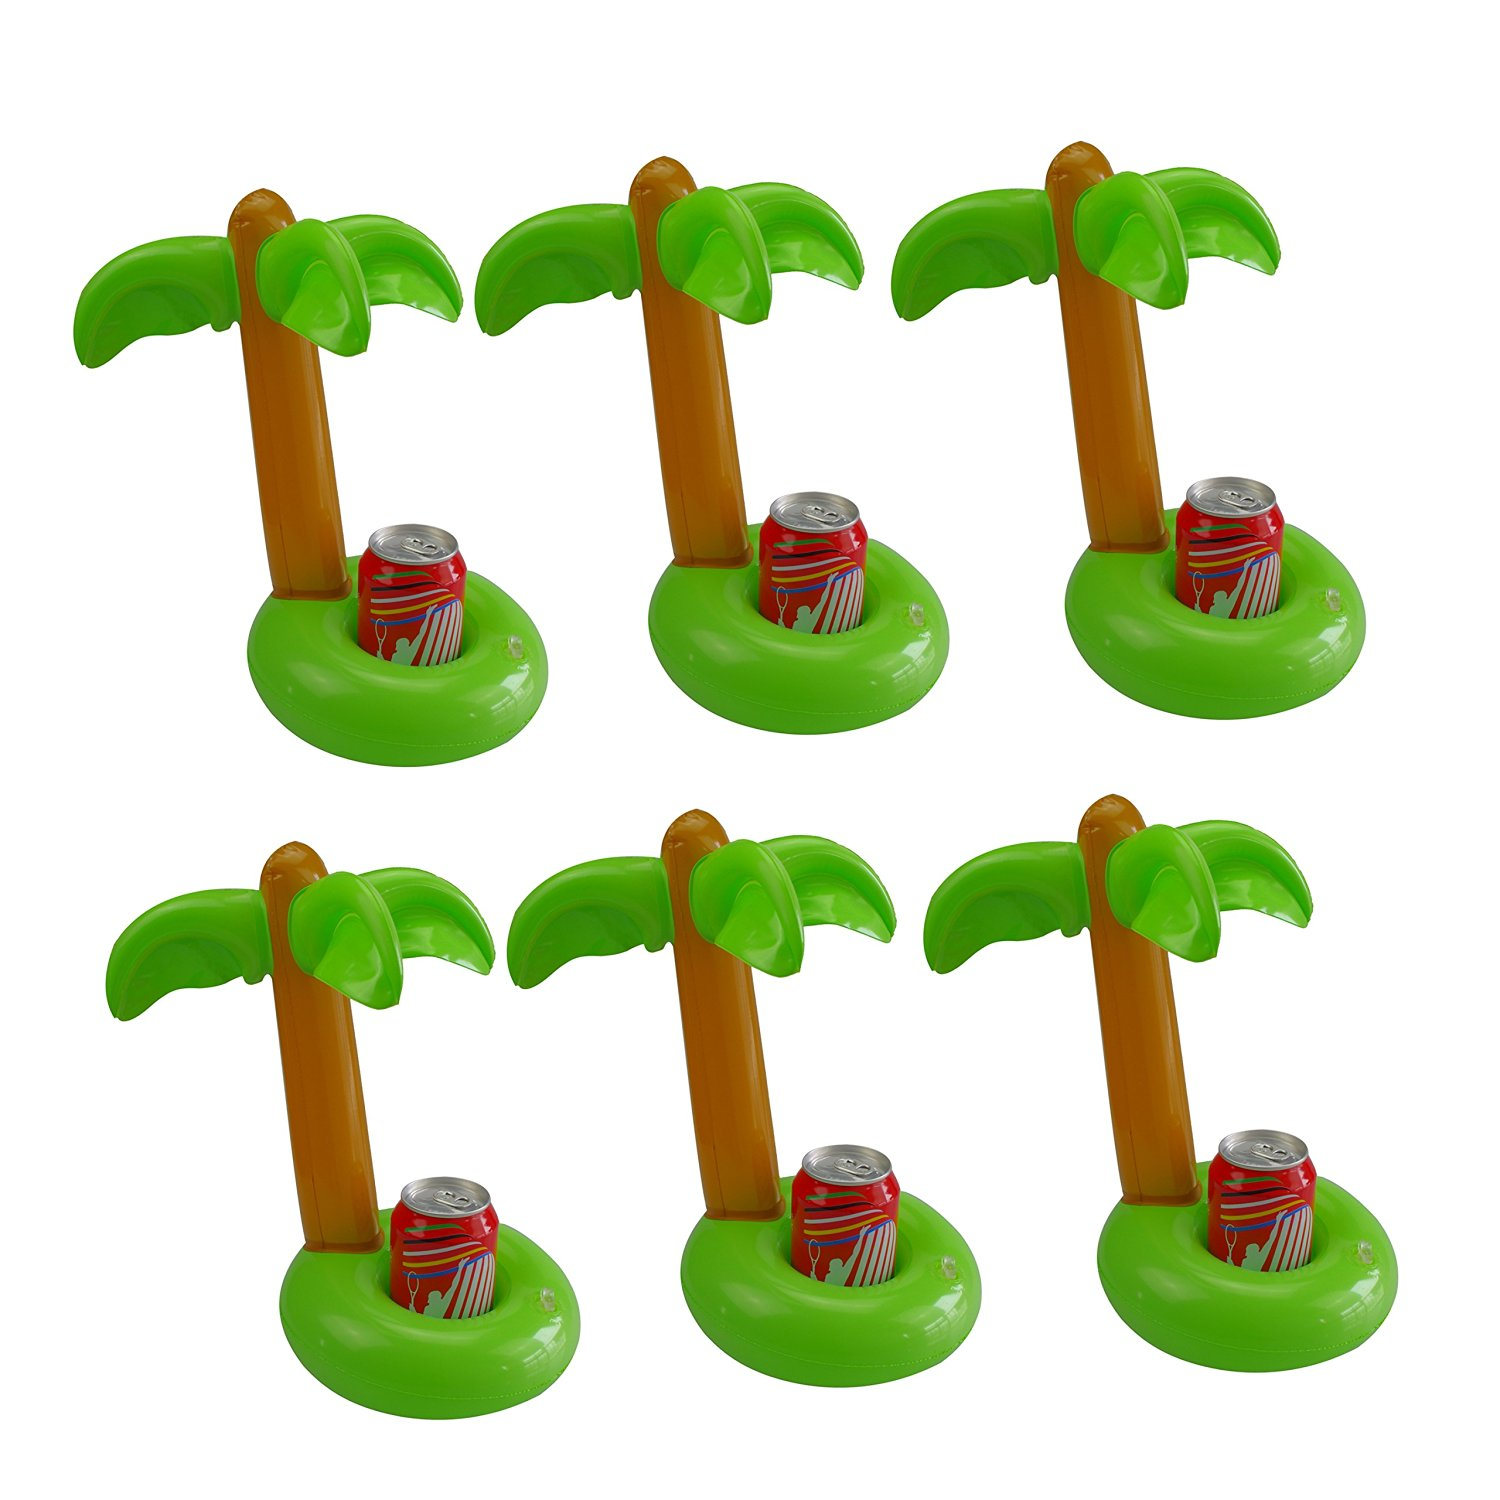 Mirenlife Inflatable Palm Island Drink Holders, Floatation Devices, Inflate Floating Coasters, 6 Pack